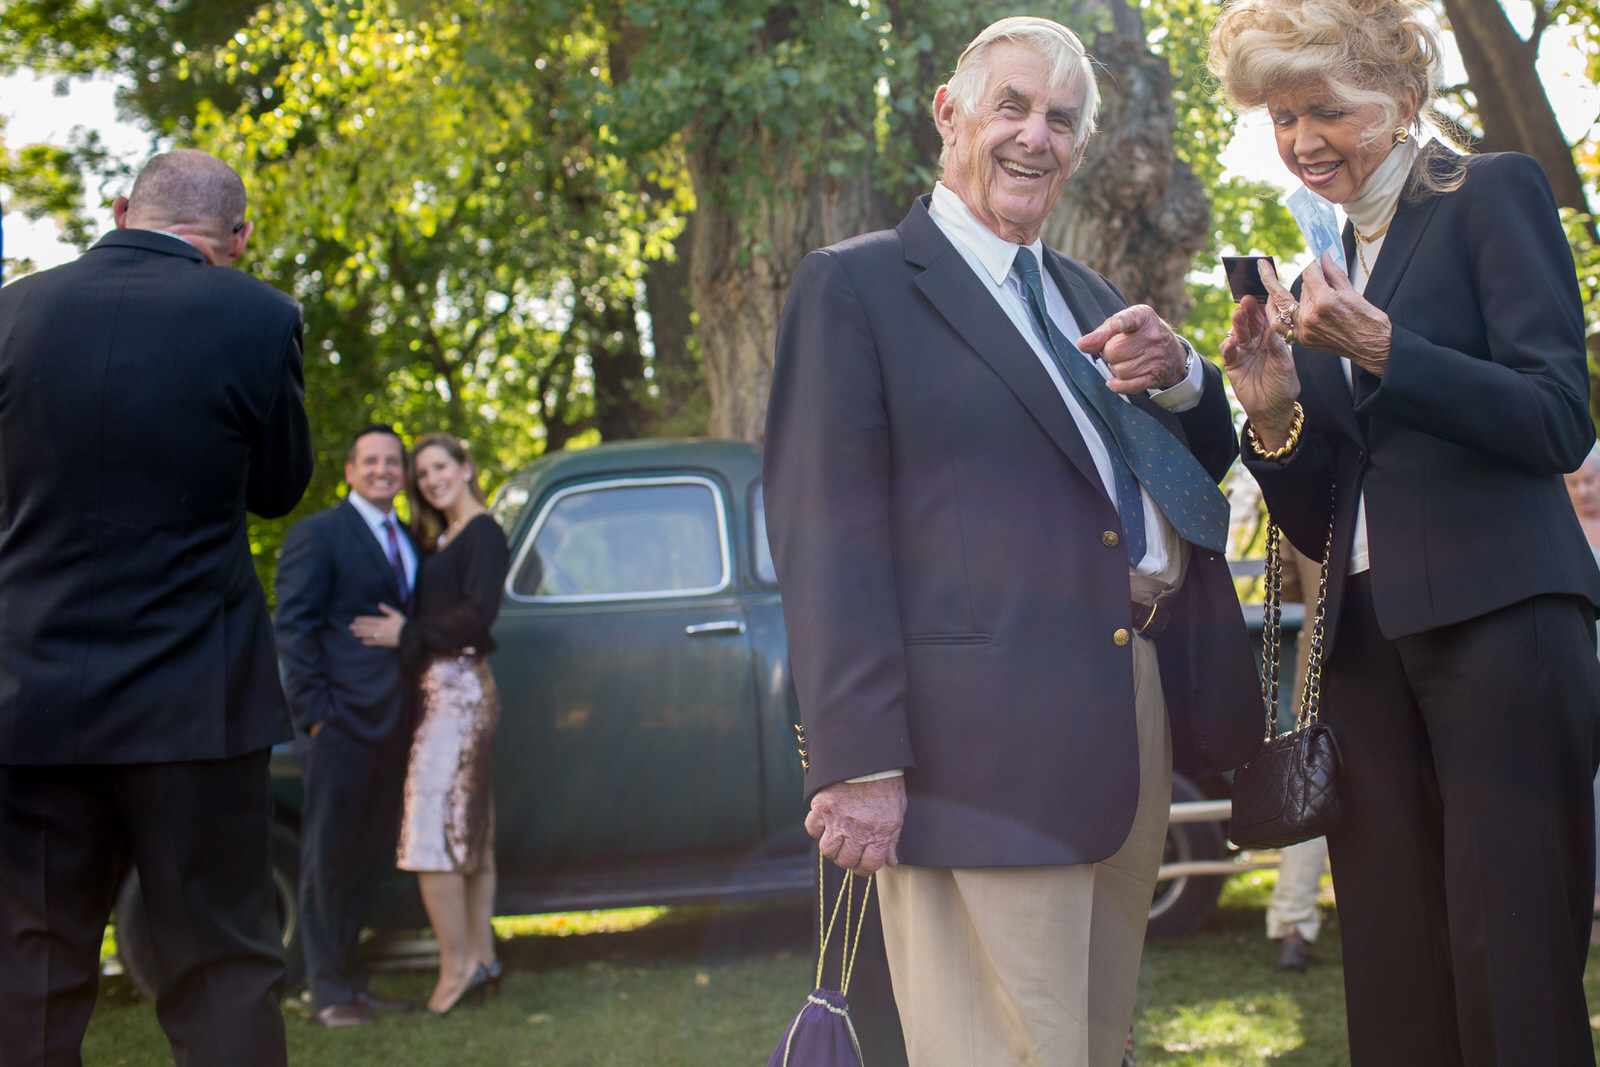 at an outdoor wedding an elderly couple in the foreground, the man laughing and pointing at the camera, in the background a couple posing for a photo against an old pick up